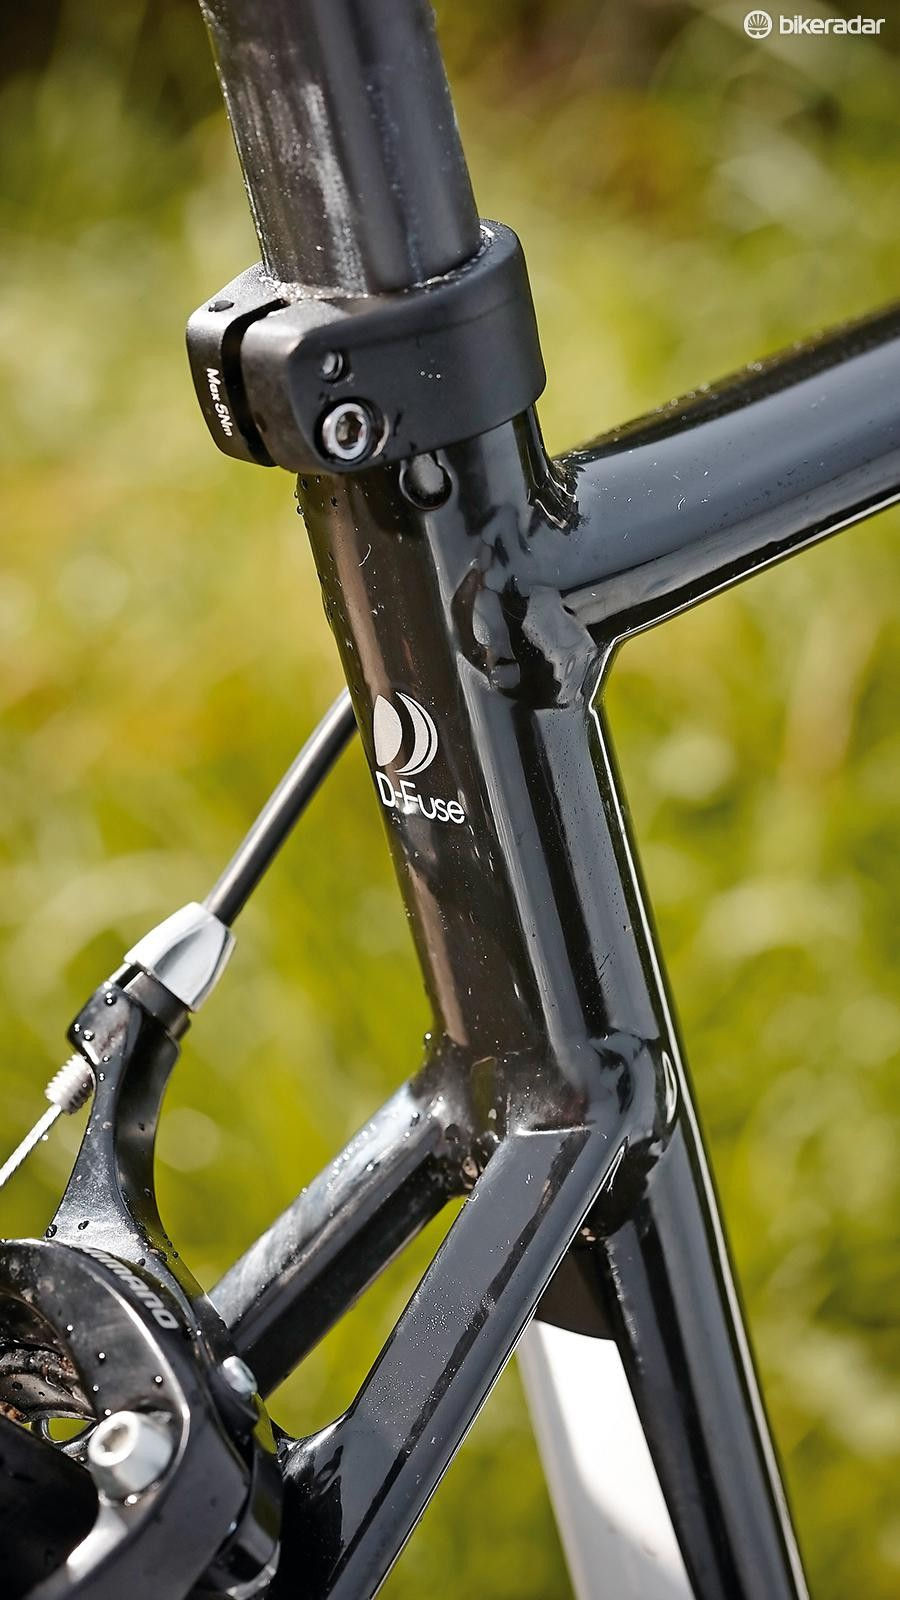 New dropped seatstays and a D-Fuse seatpost for the 2015 Defy